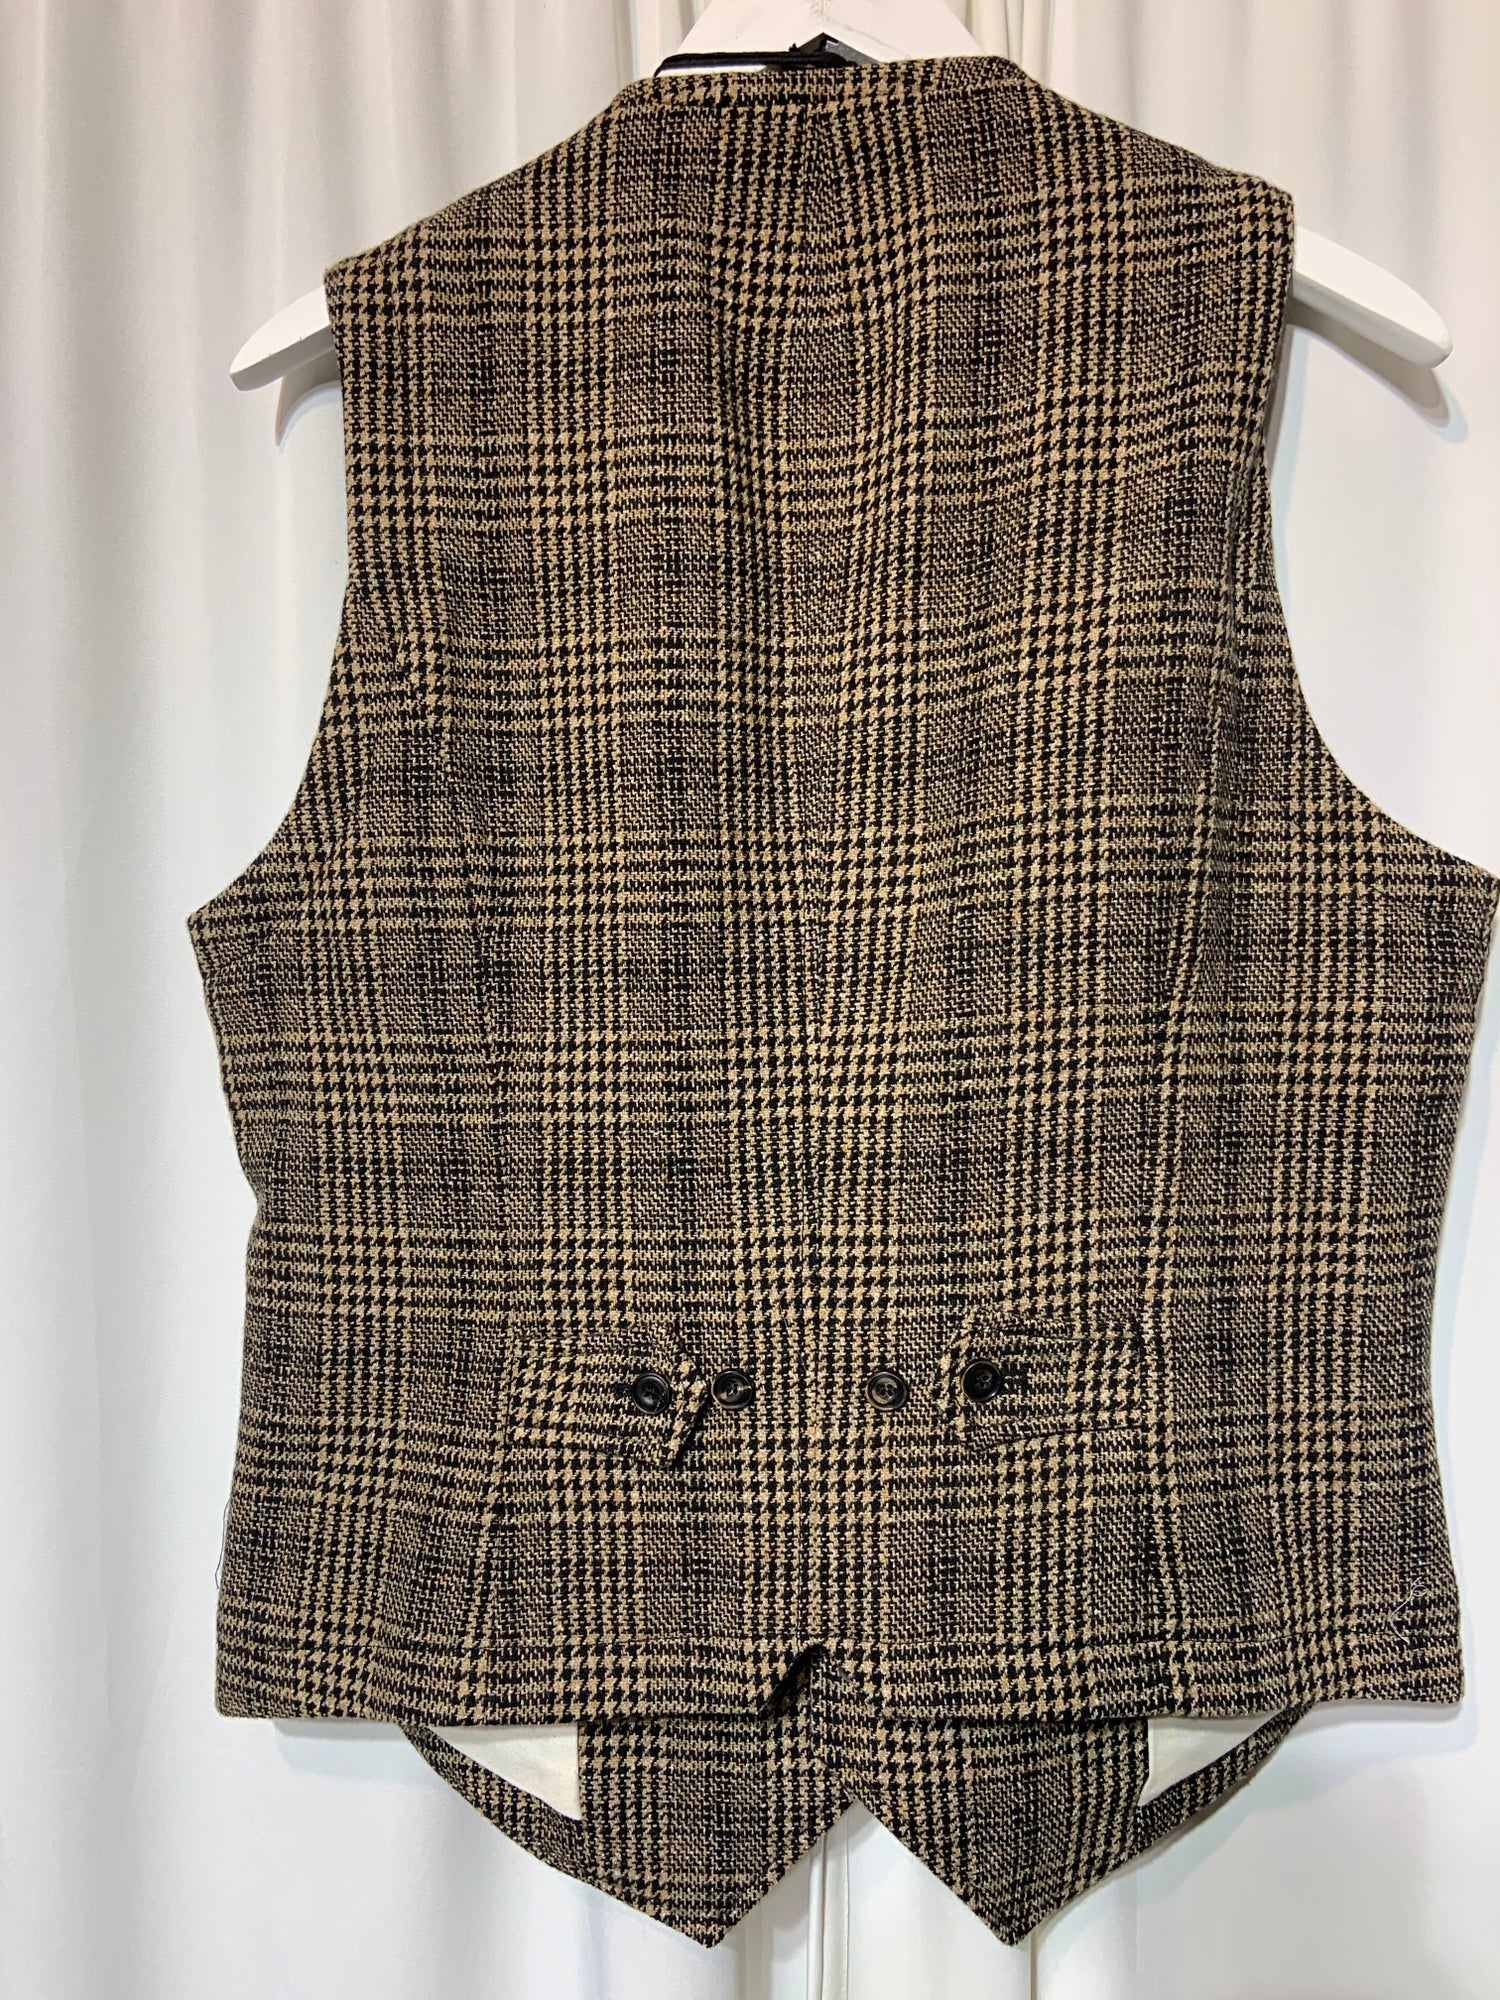 Image of Hansen Garments Waistcoat William